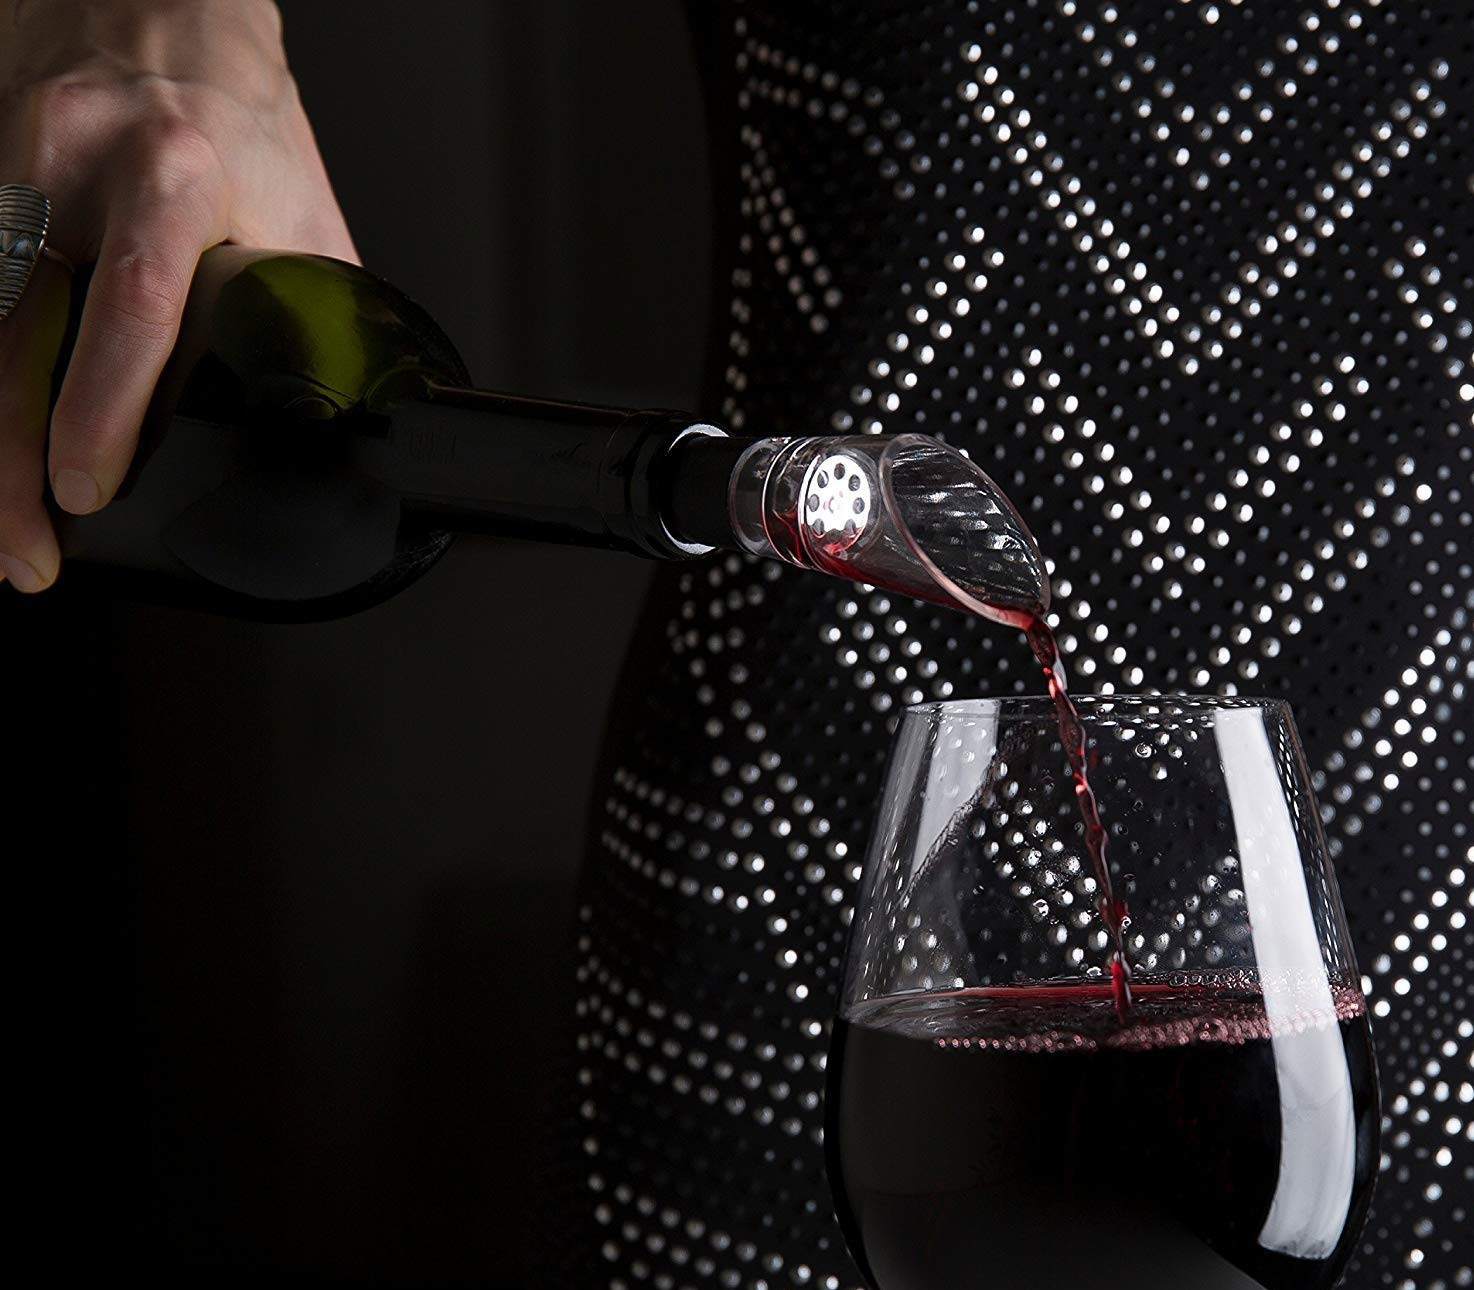 Wine being poured into glass with aerator